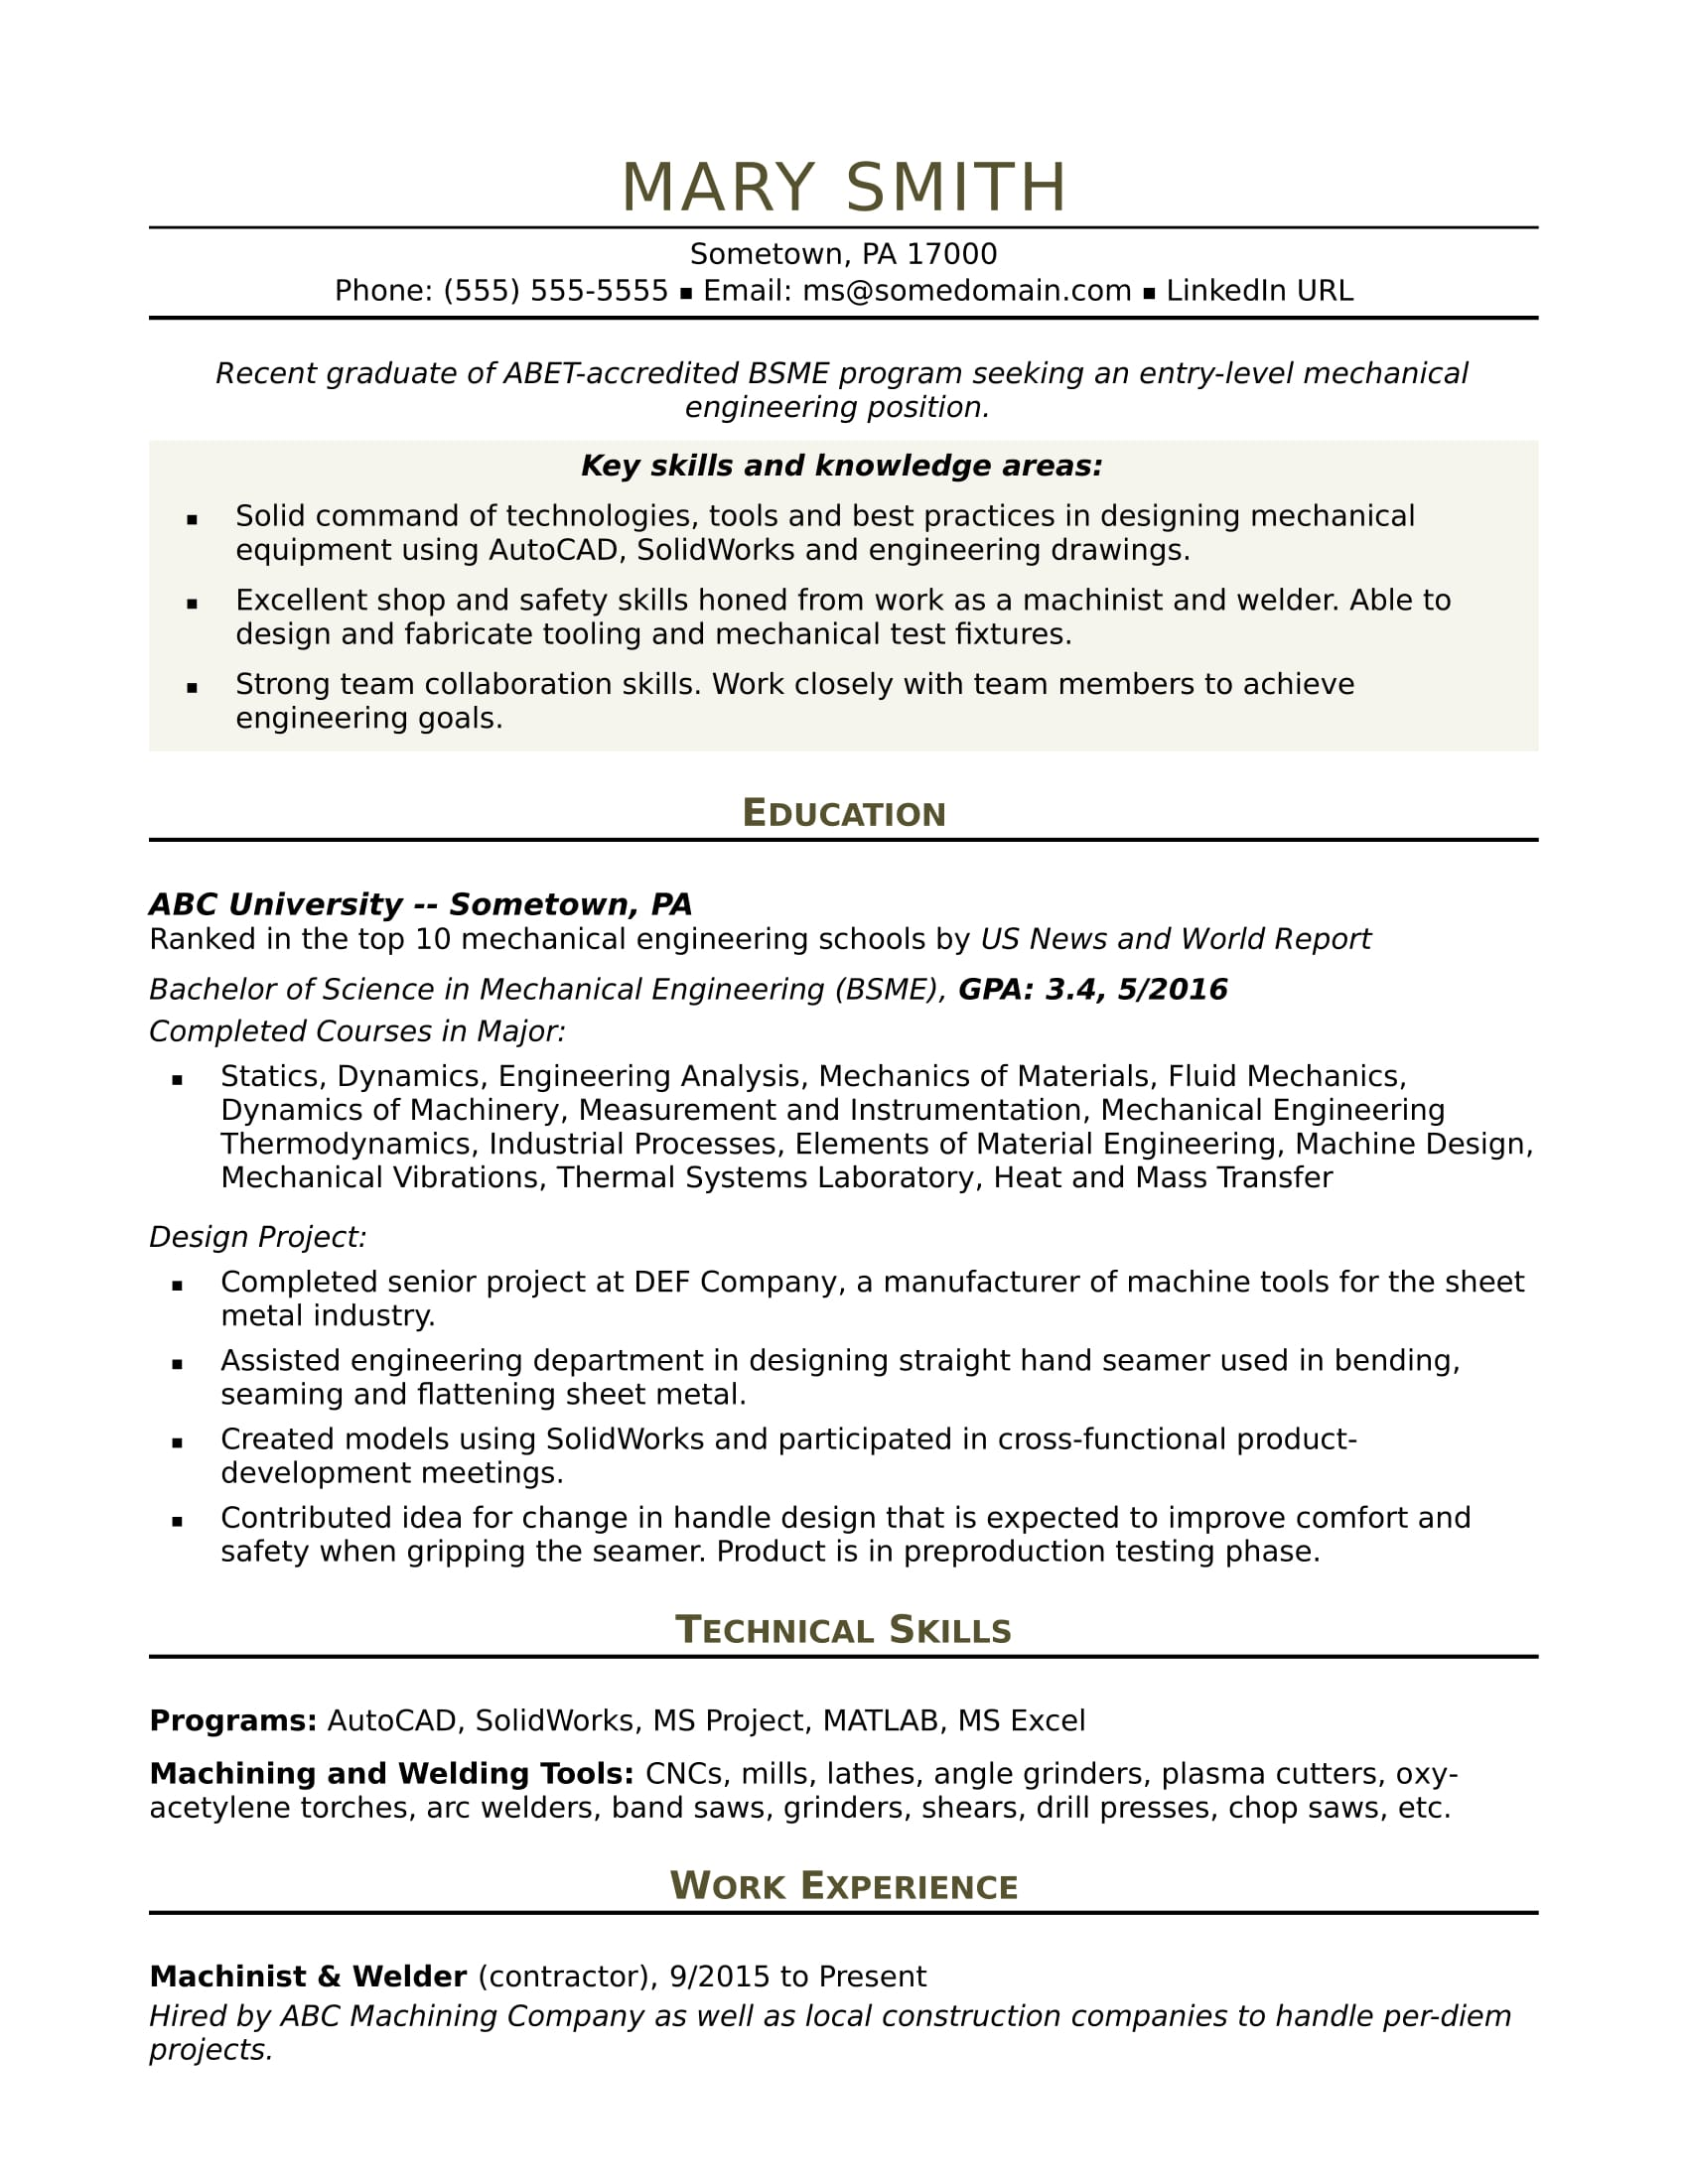 sample resume for an entry level mechanical engineer - Resume Bachelor Of Science